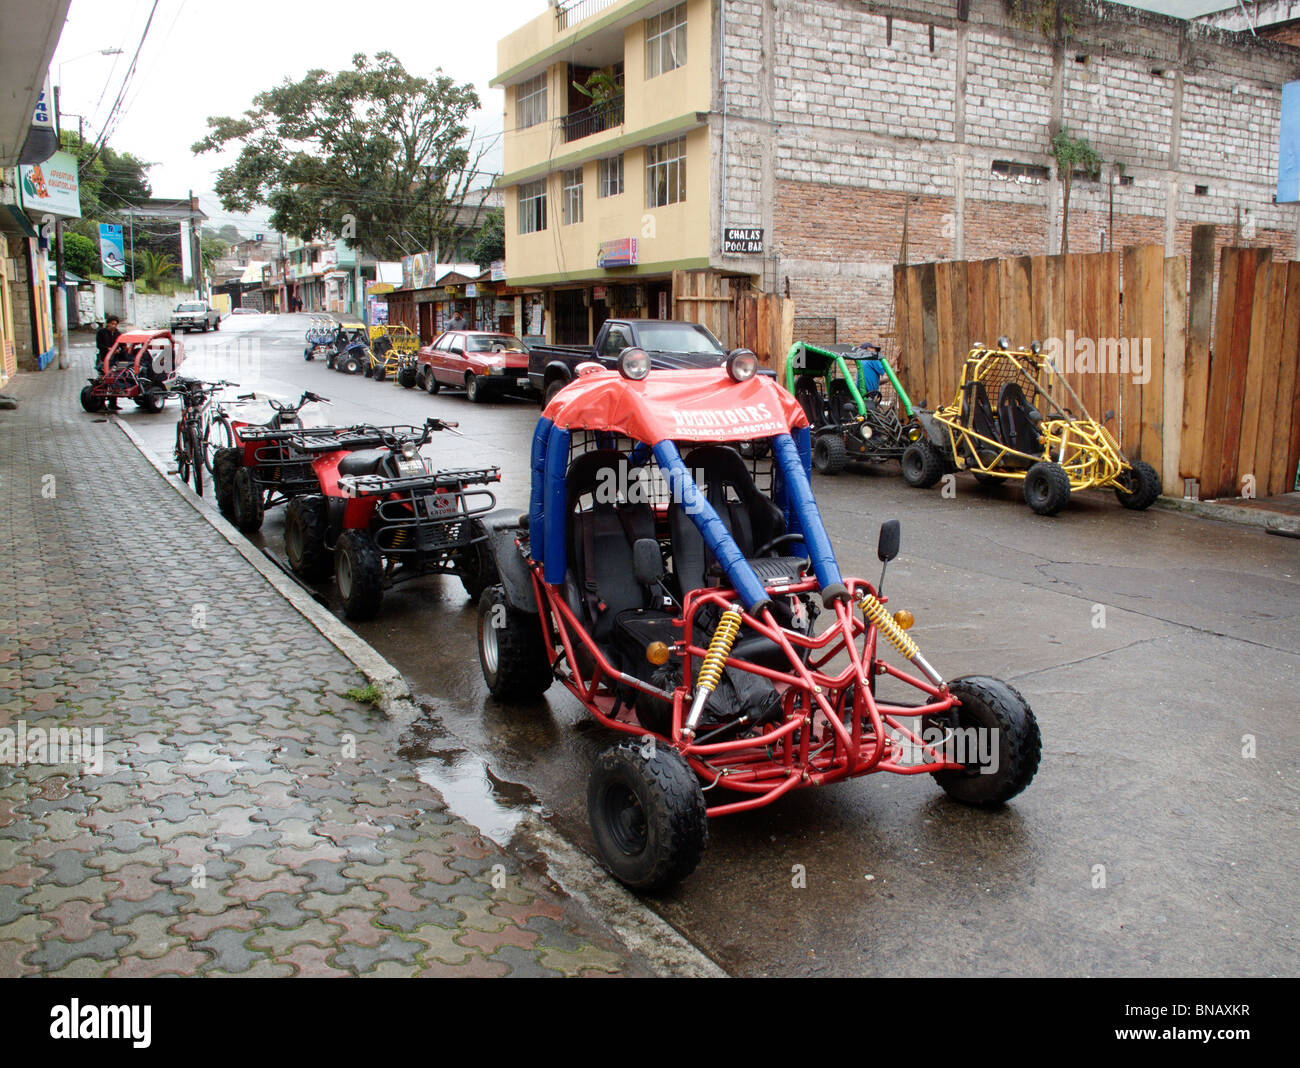 Buggy Mieten Zypern Rent A Buggy Stockfotos Rent A Buggy Bilder Alamy